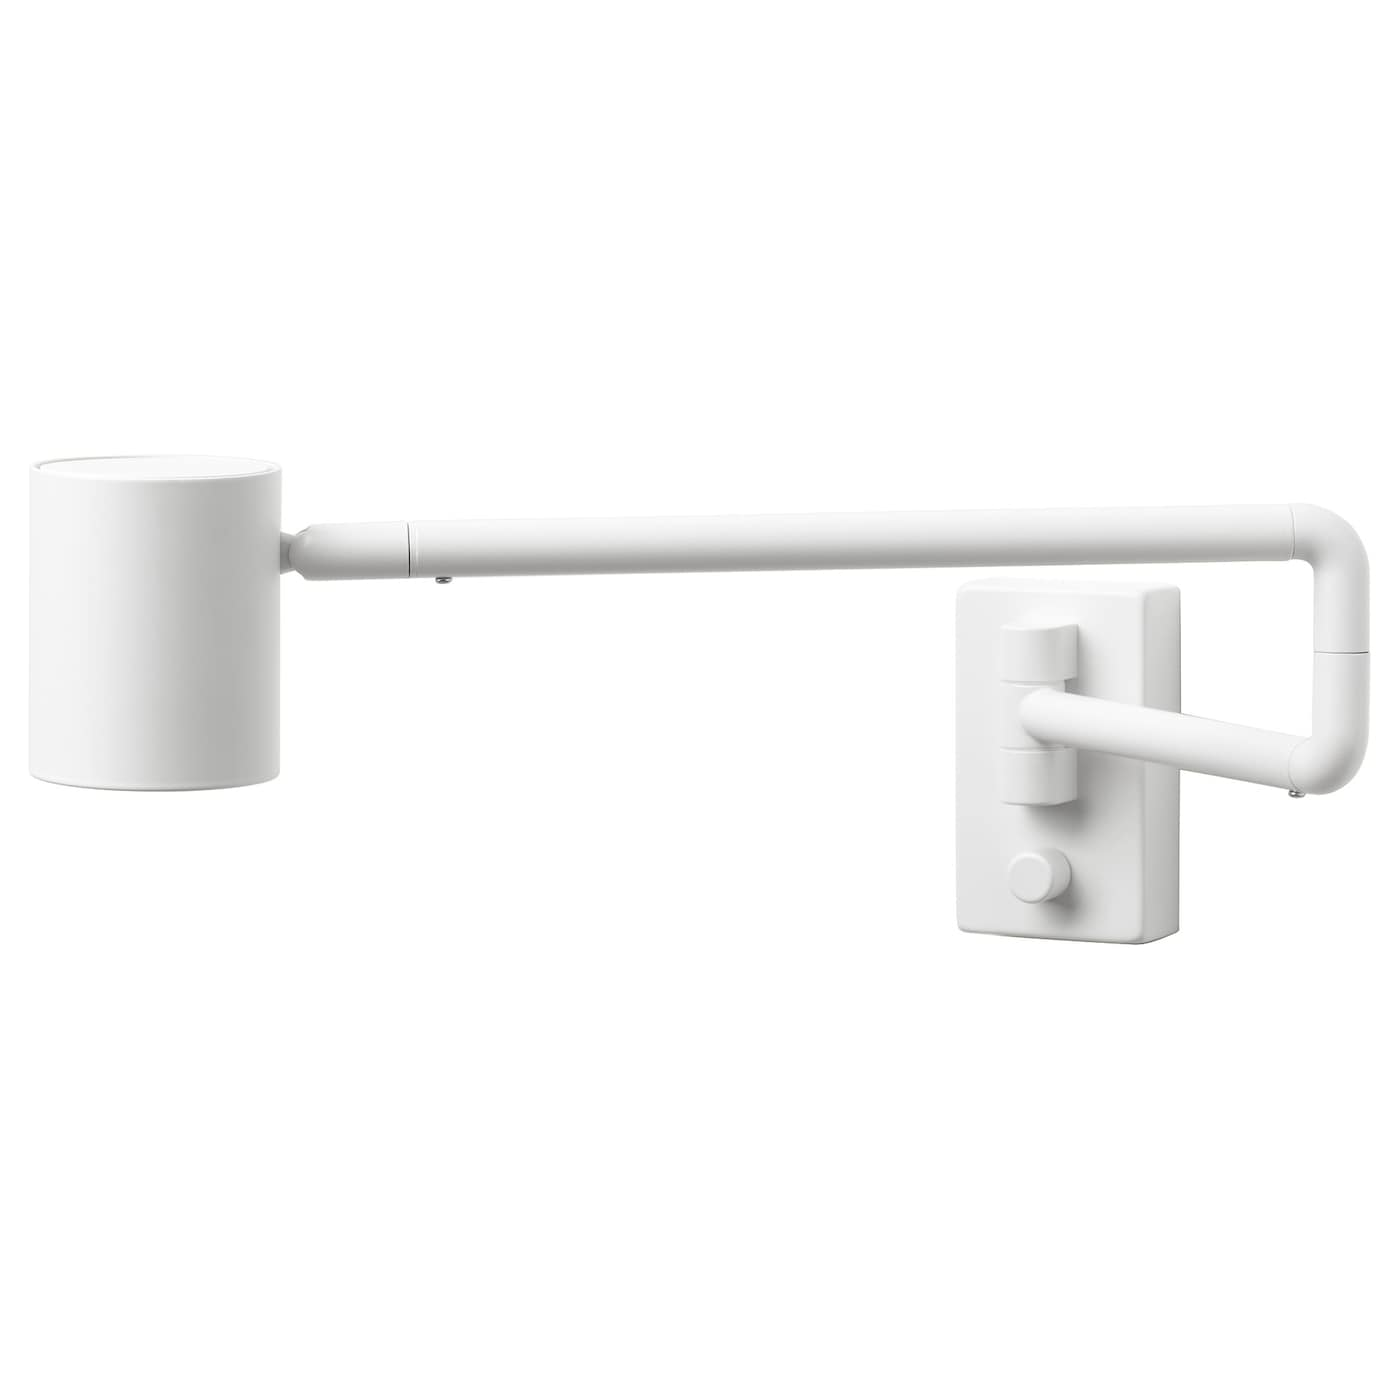 IKEA NYMÅNE wall lamp w swing arm, wired-in Provides a directed light that is great for reading.